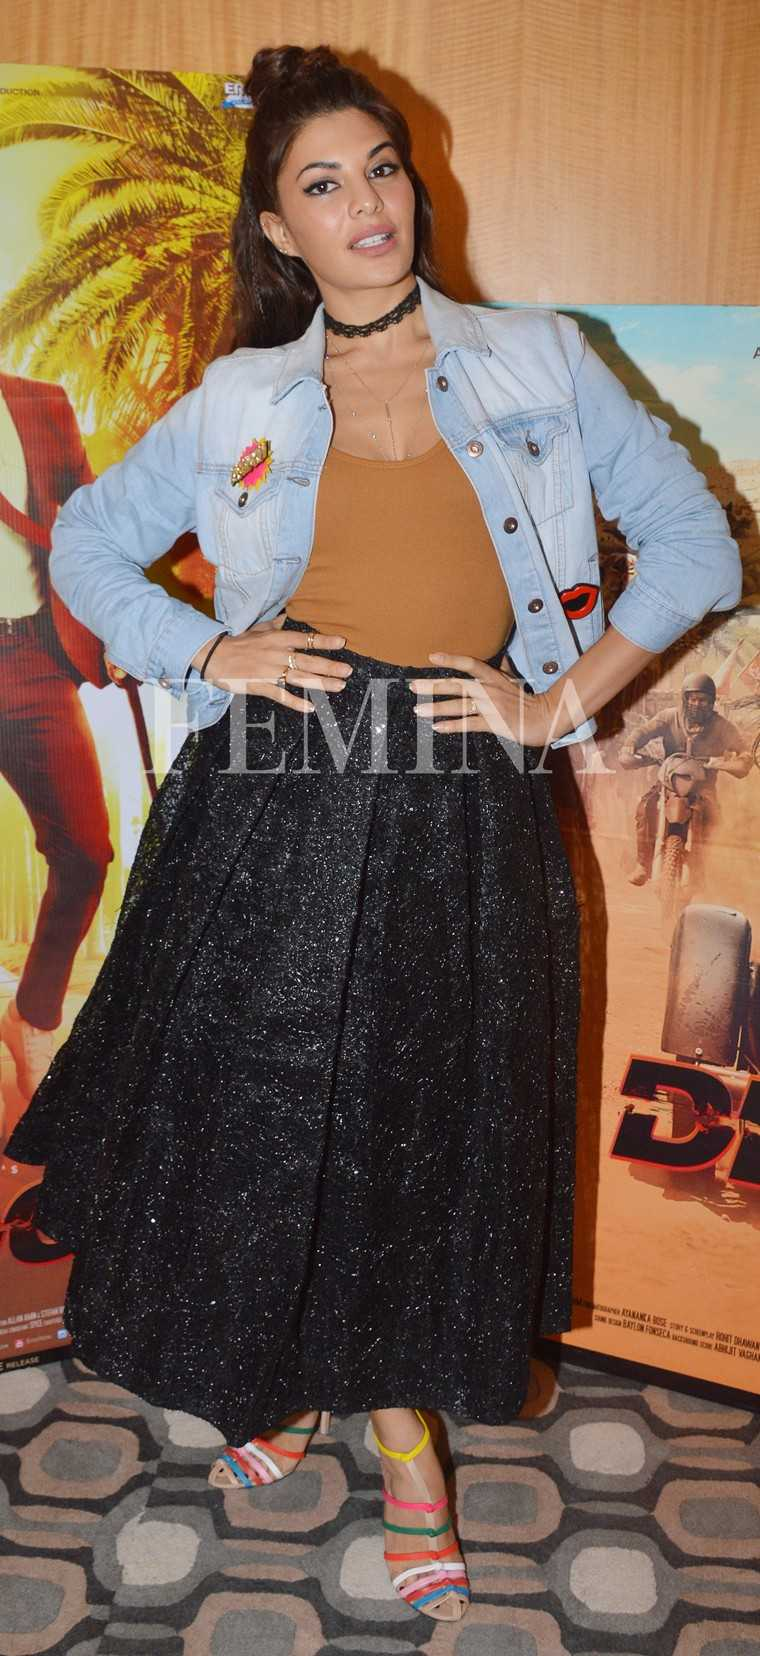 Giving her own spin to the stickered denim jacket was Jacqueline Fernandez who paired hers with a flared Sameer Madan skirt, colourful heels and a '90s-style choker.